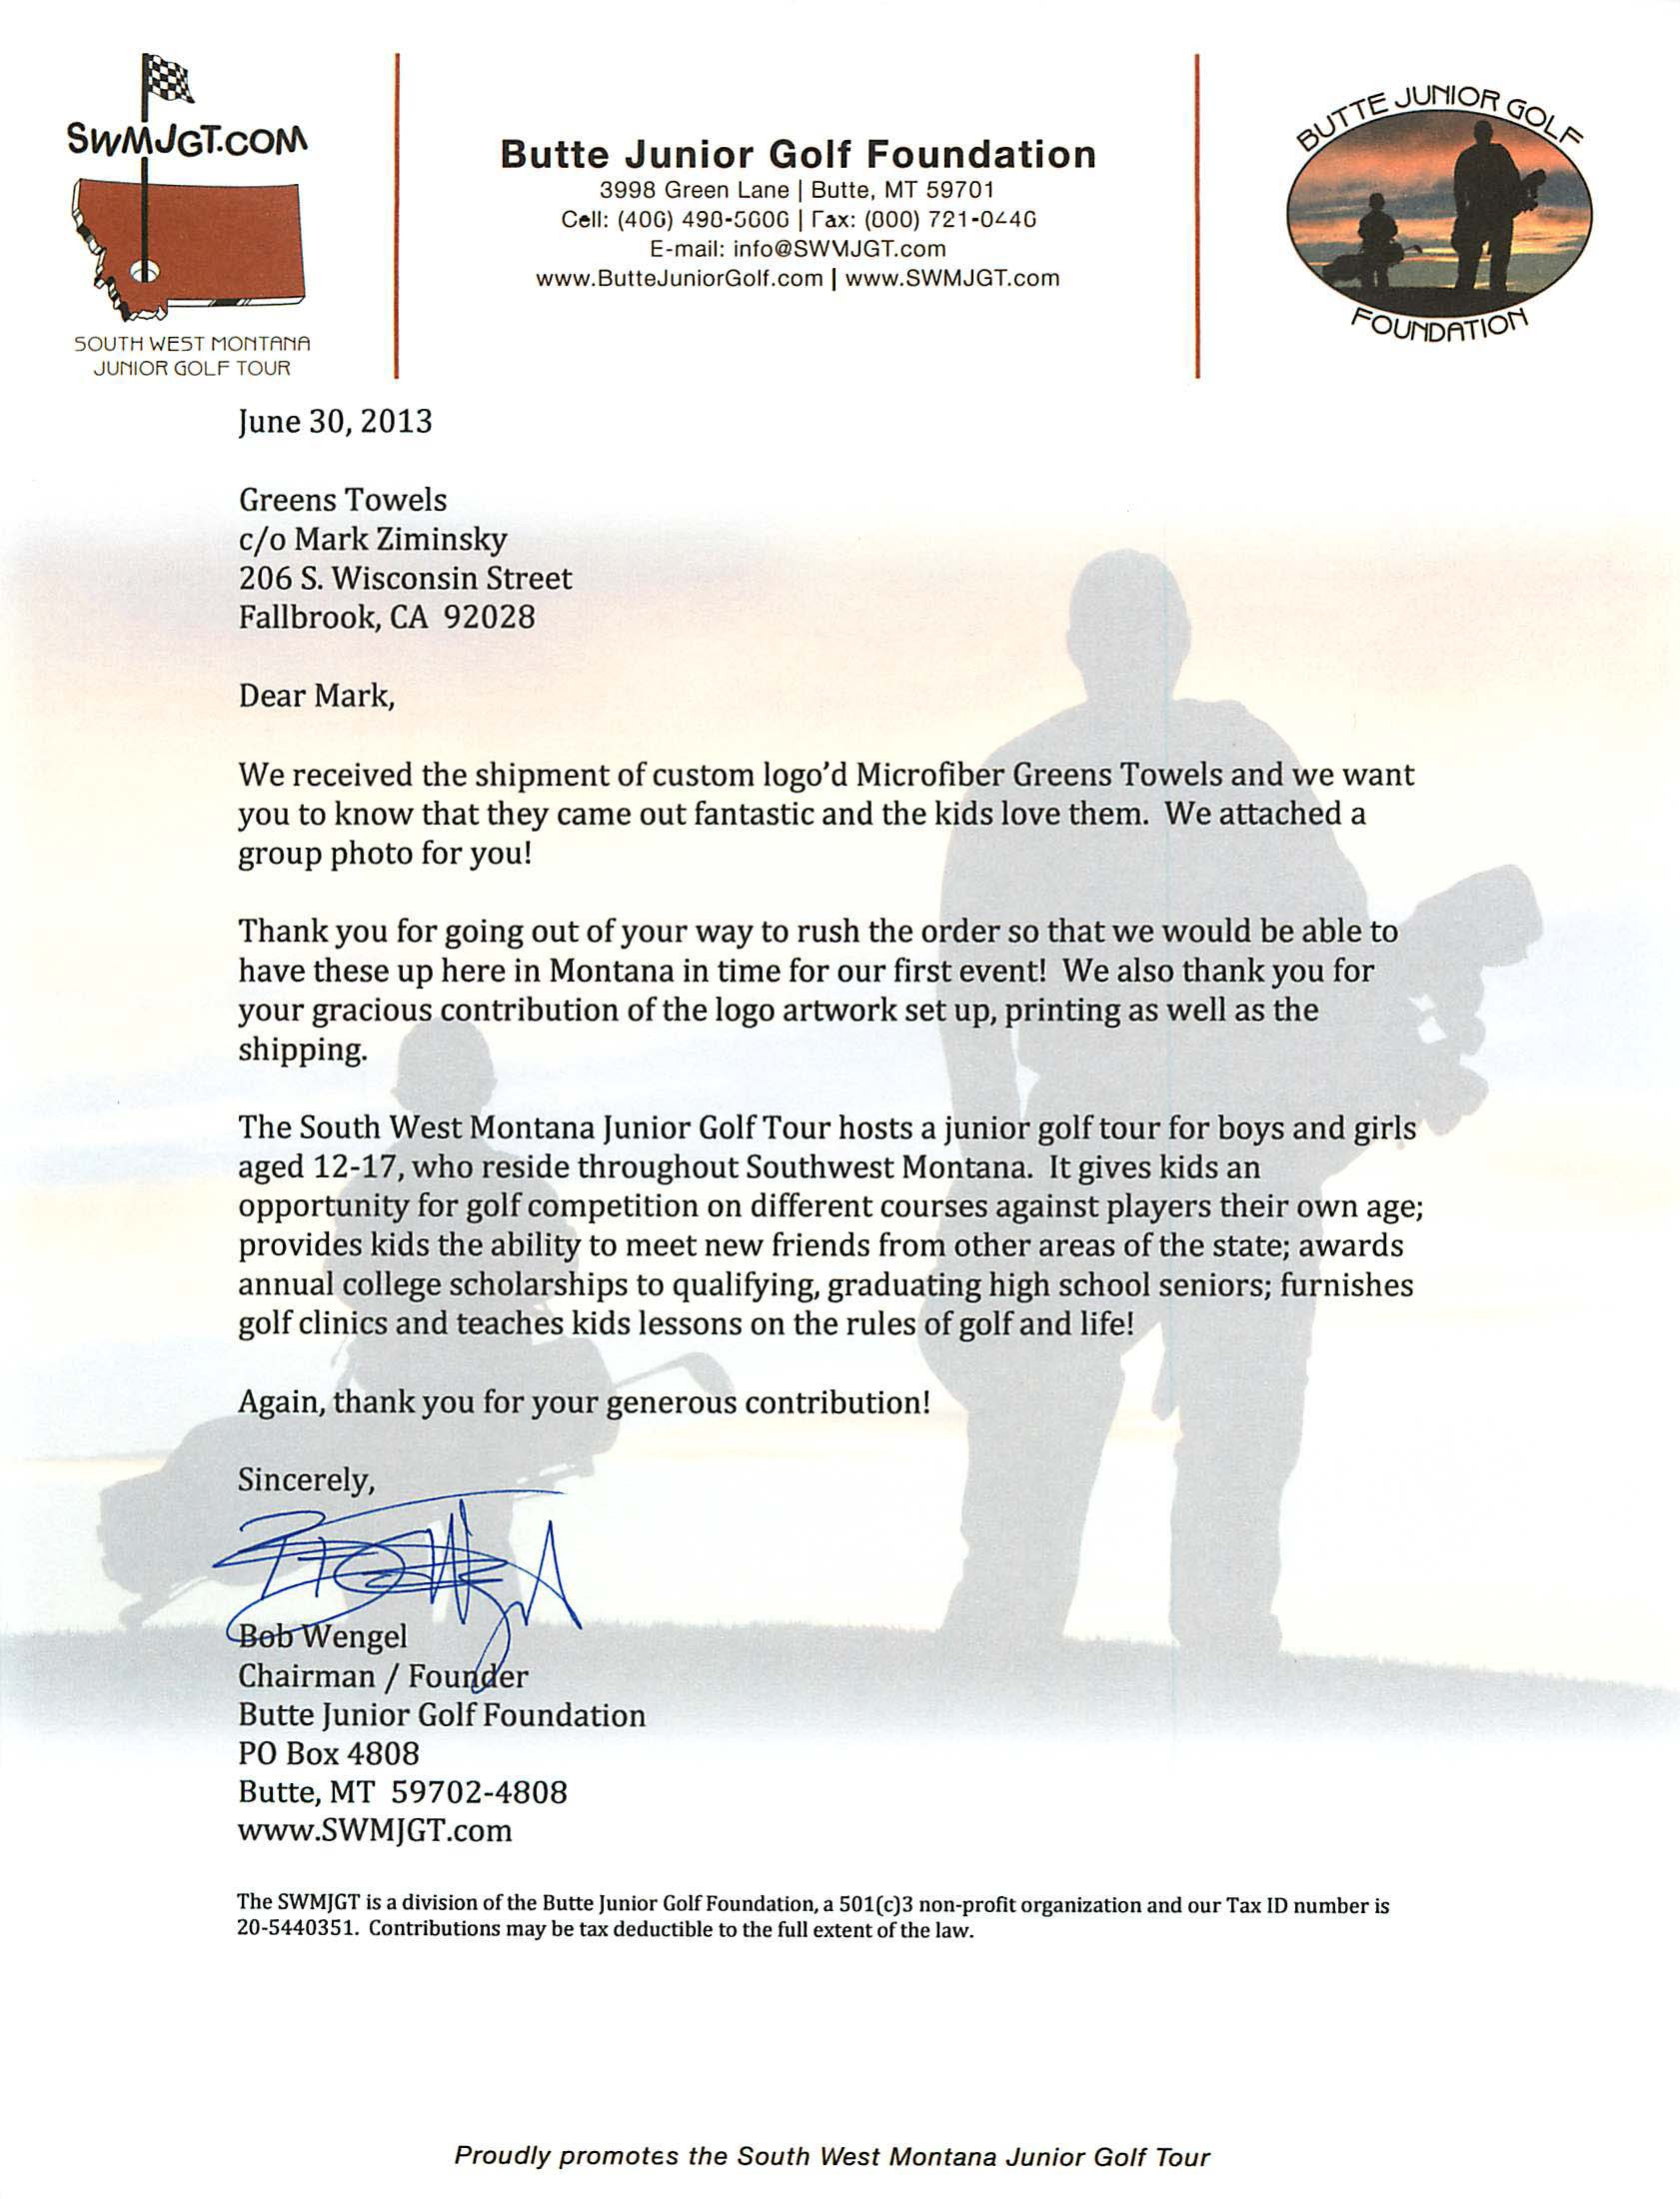 Golf tournament Thank You Letter Template - 40 Fresh Sponsorship Request Letter for event